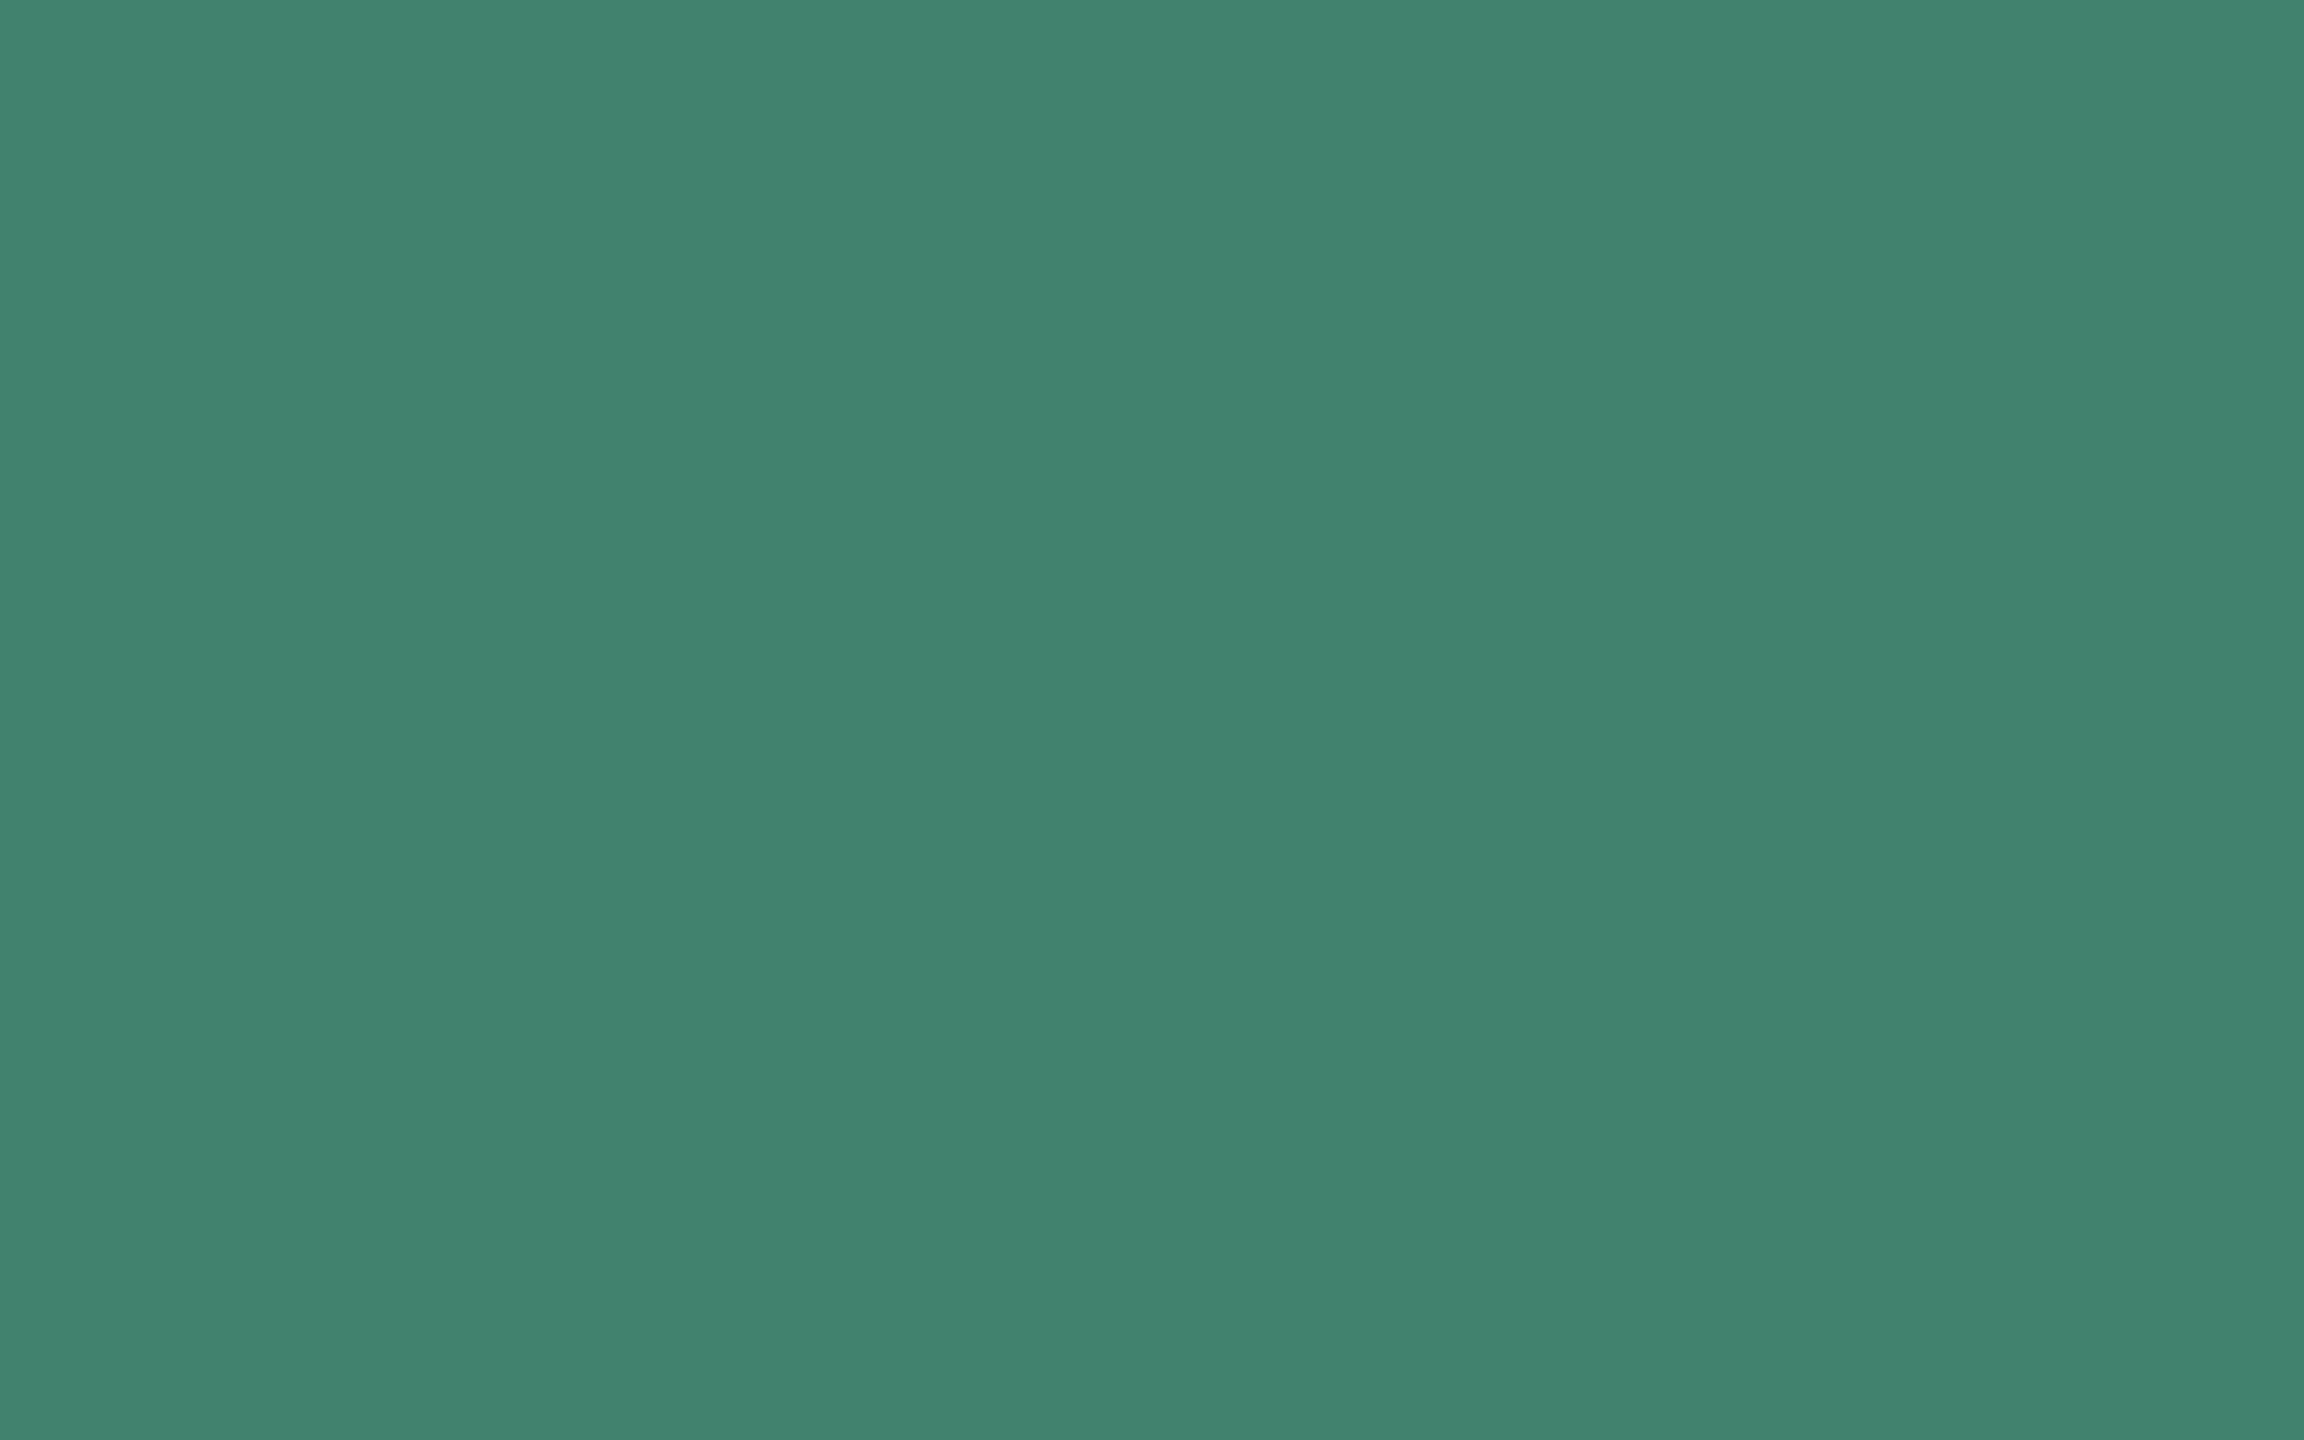 2304x1440 Viridian Solid Color Background